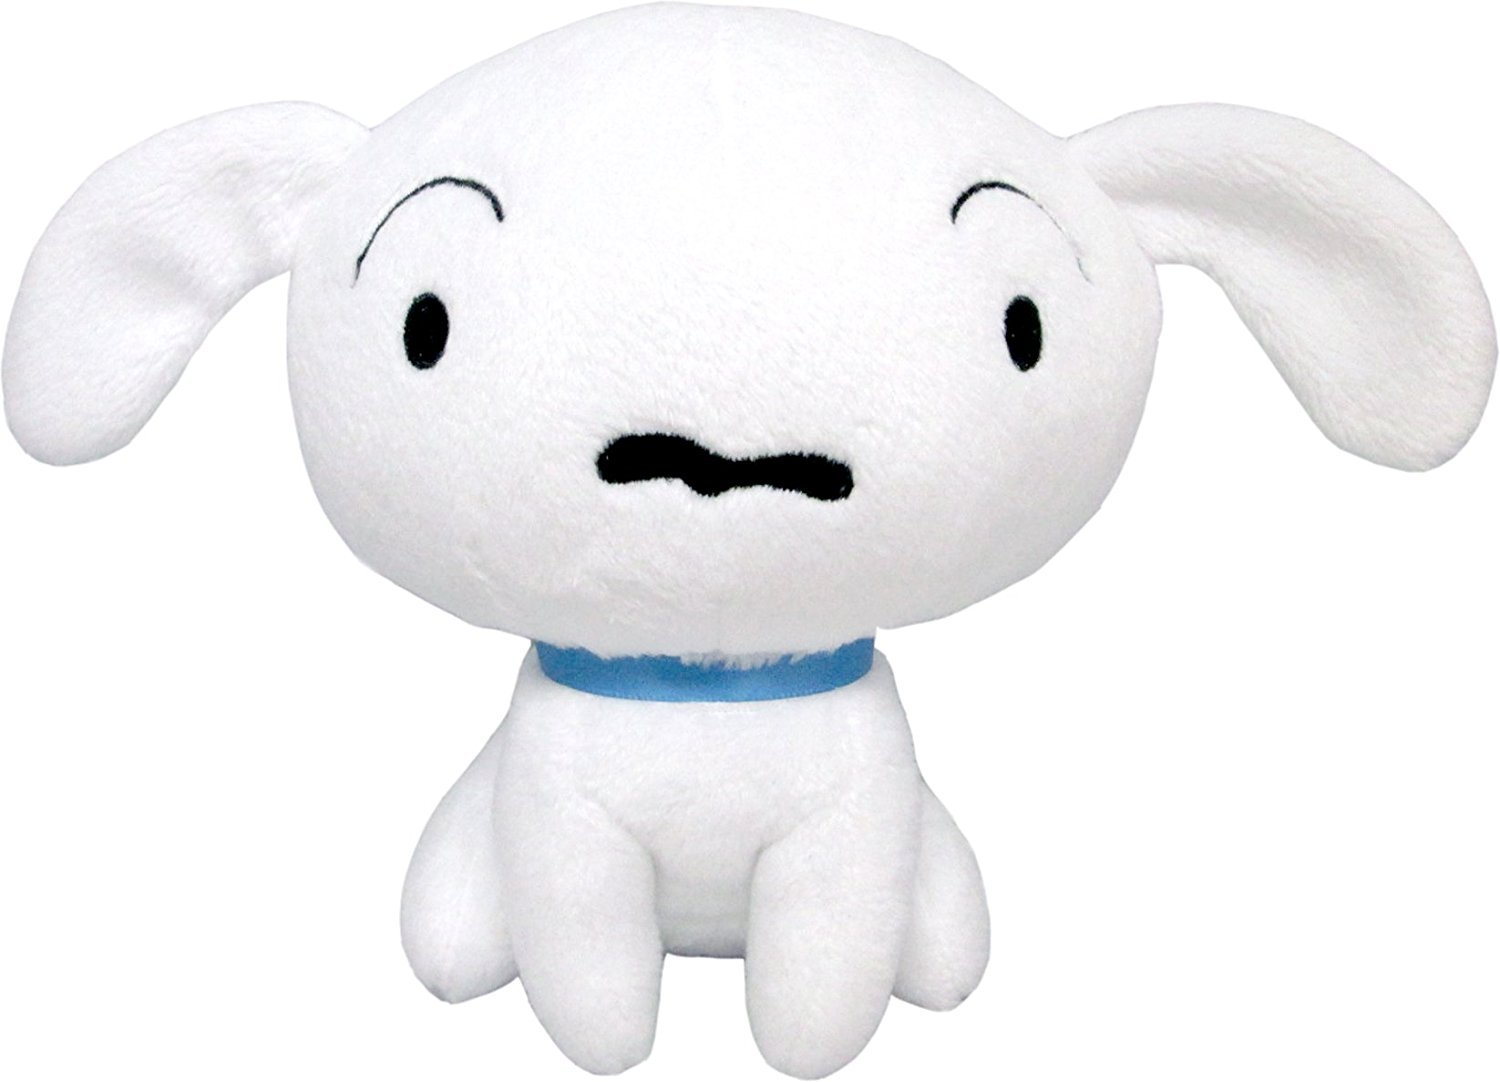 Shiro Puppie Dog from Crayon Shin-chan Plush Toy - Small Size